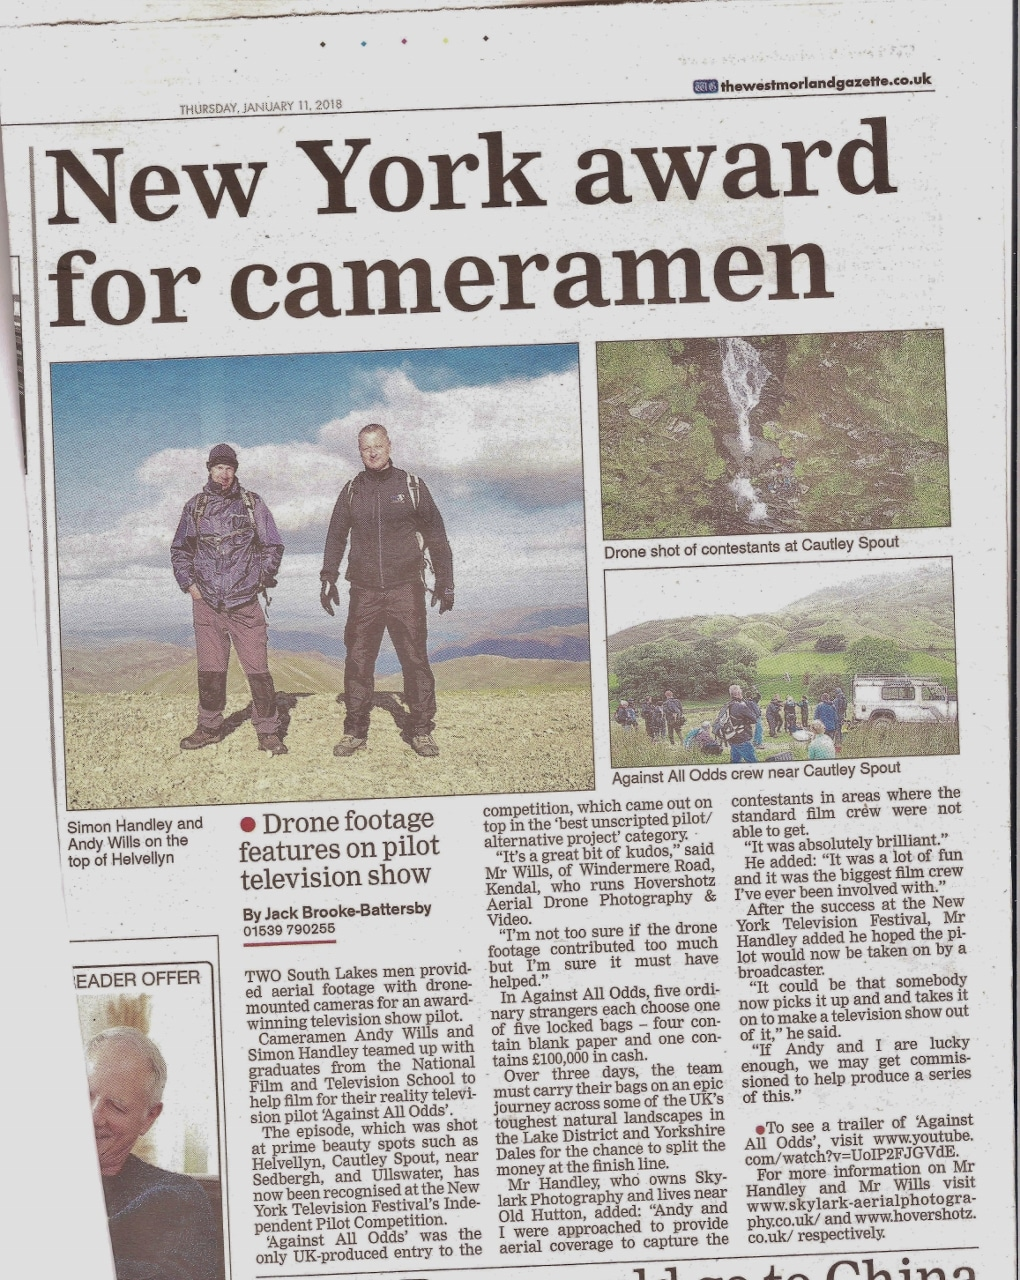 New York Award For Cameramen